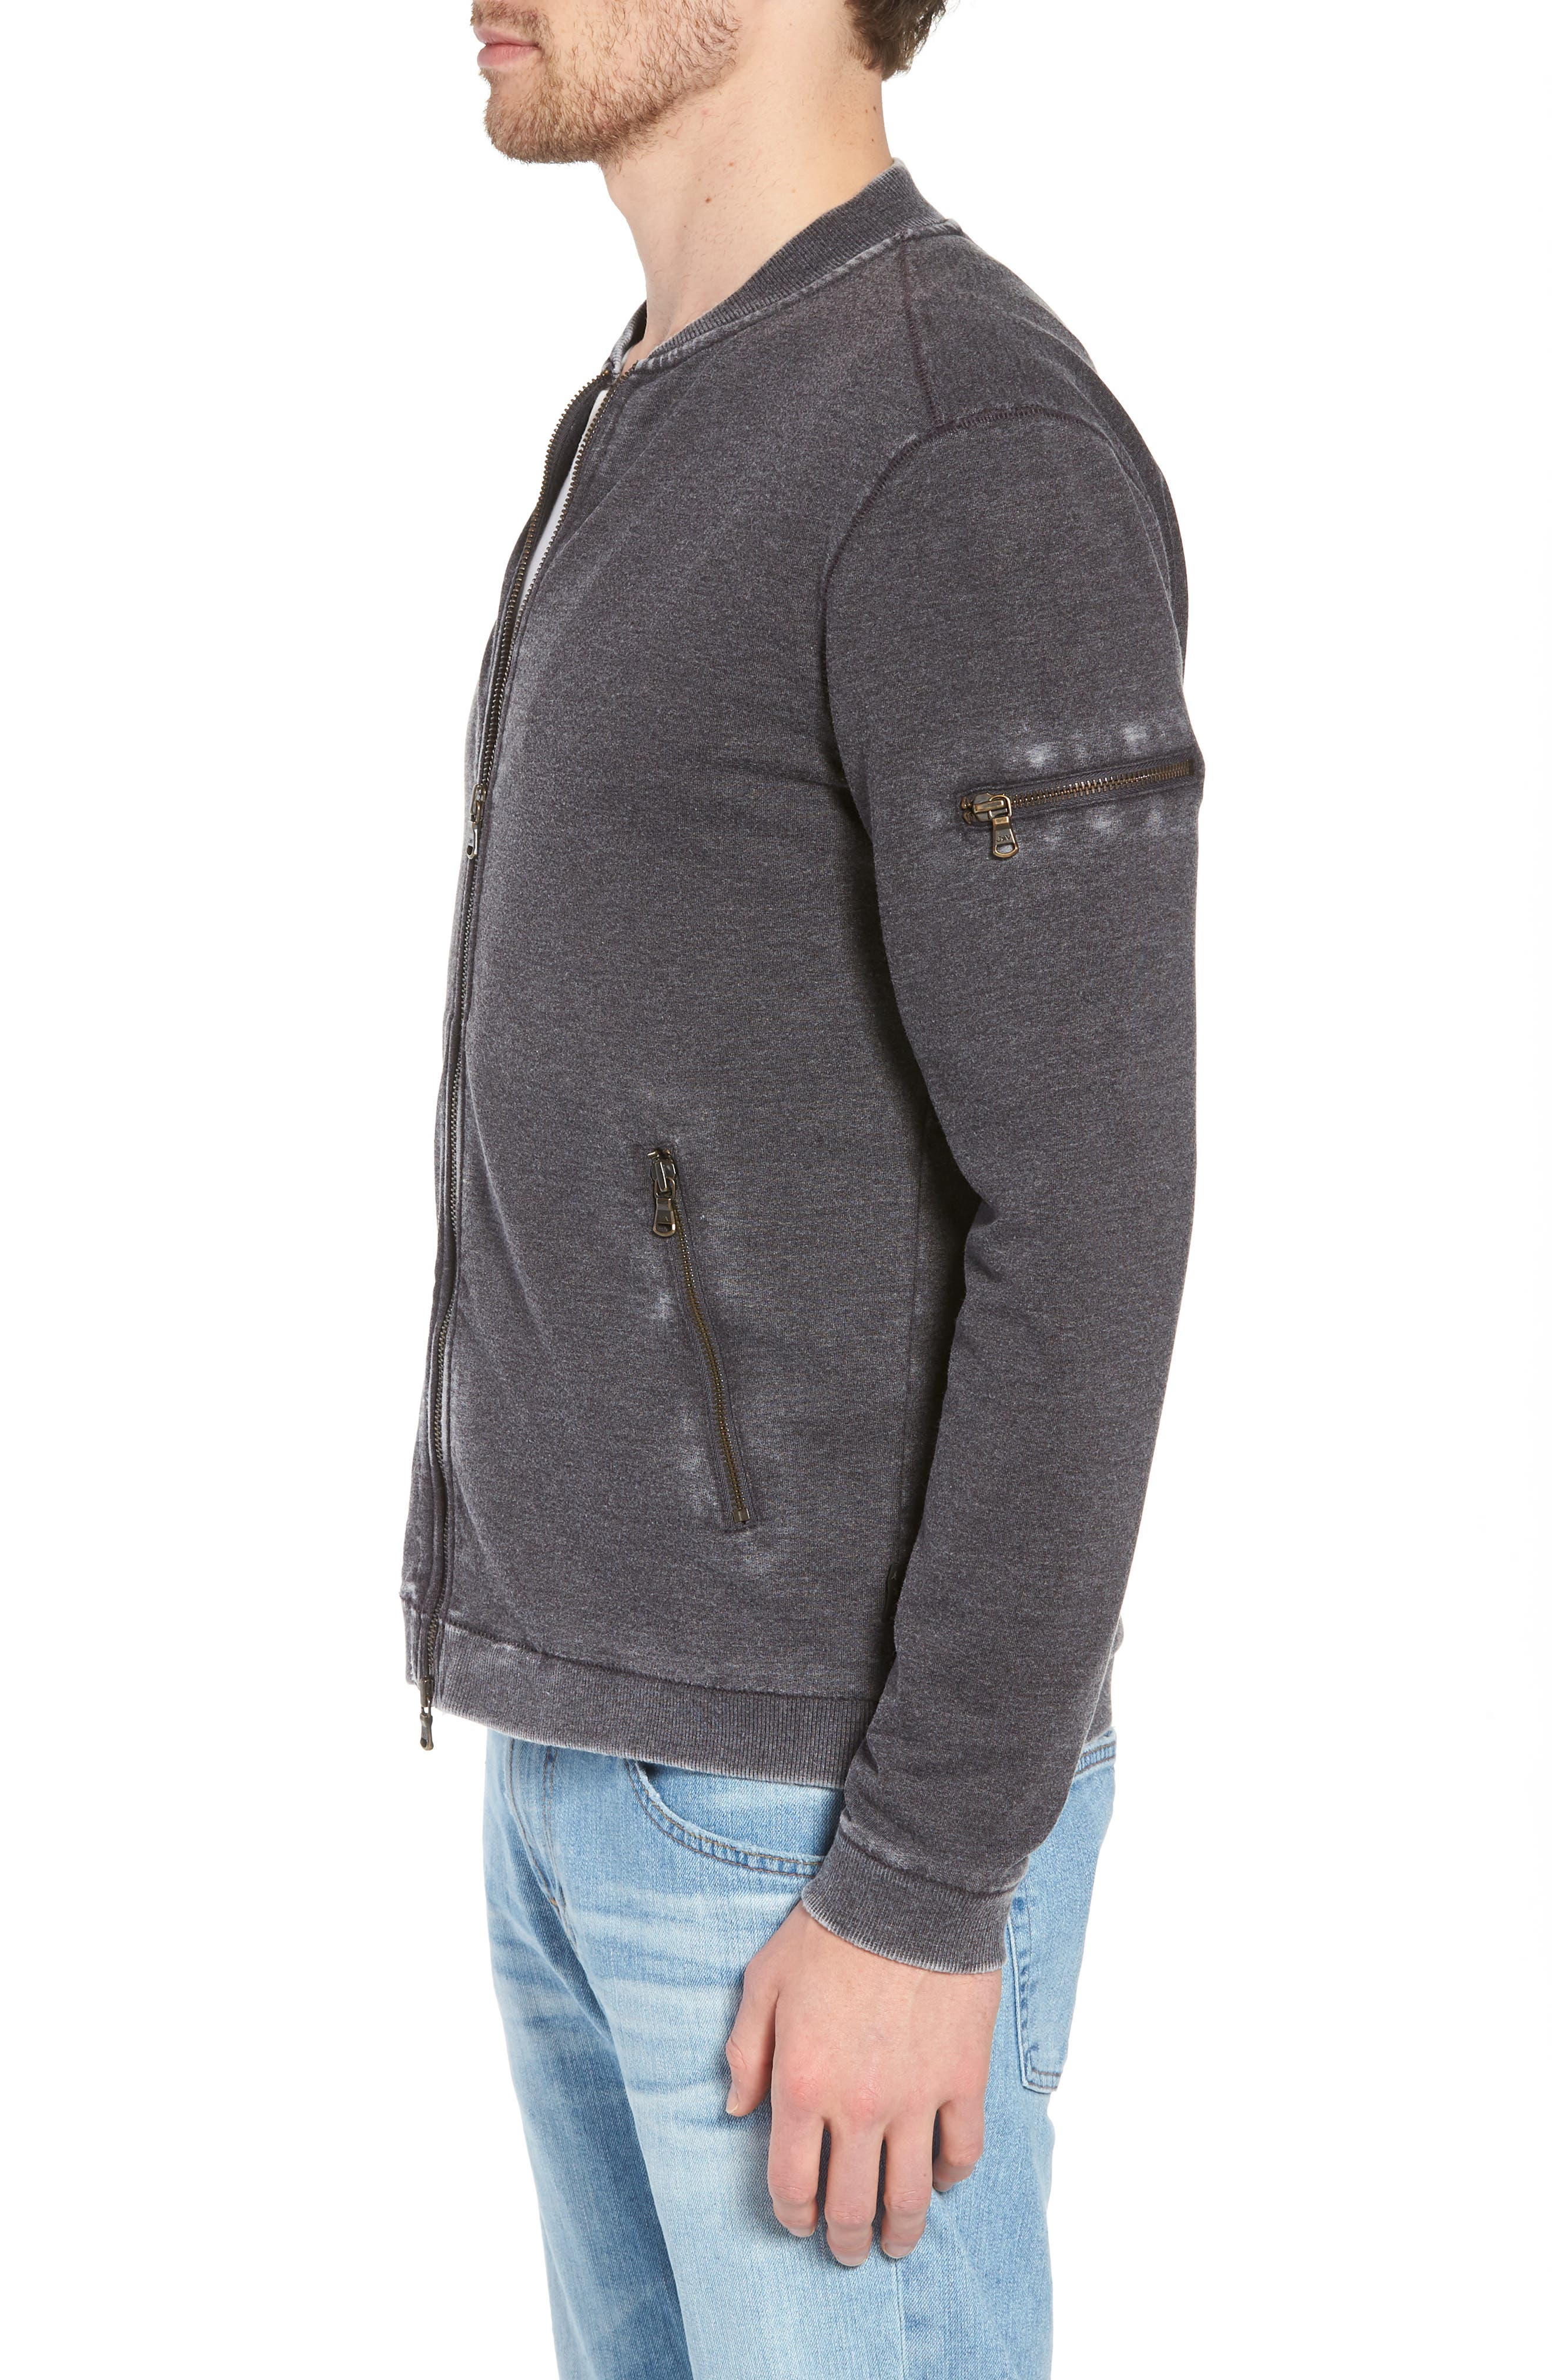 Burnout French Terry Zip Sweater,                             Alternate thumbnail 3, color,                             032